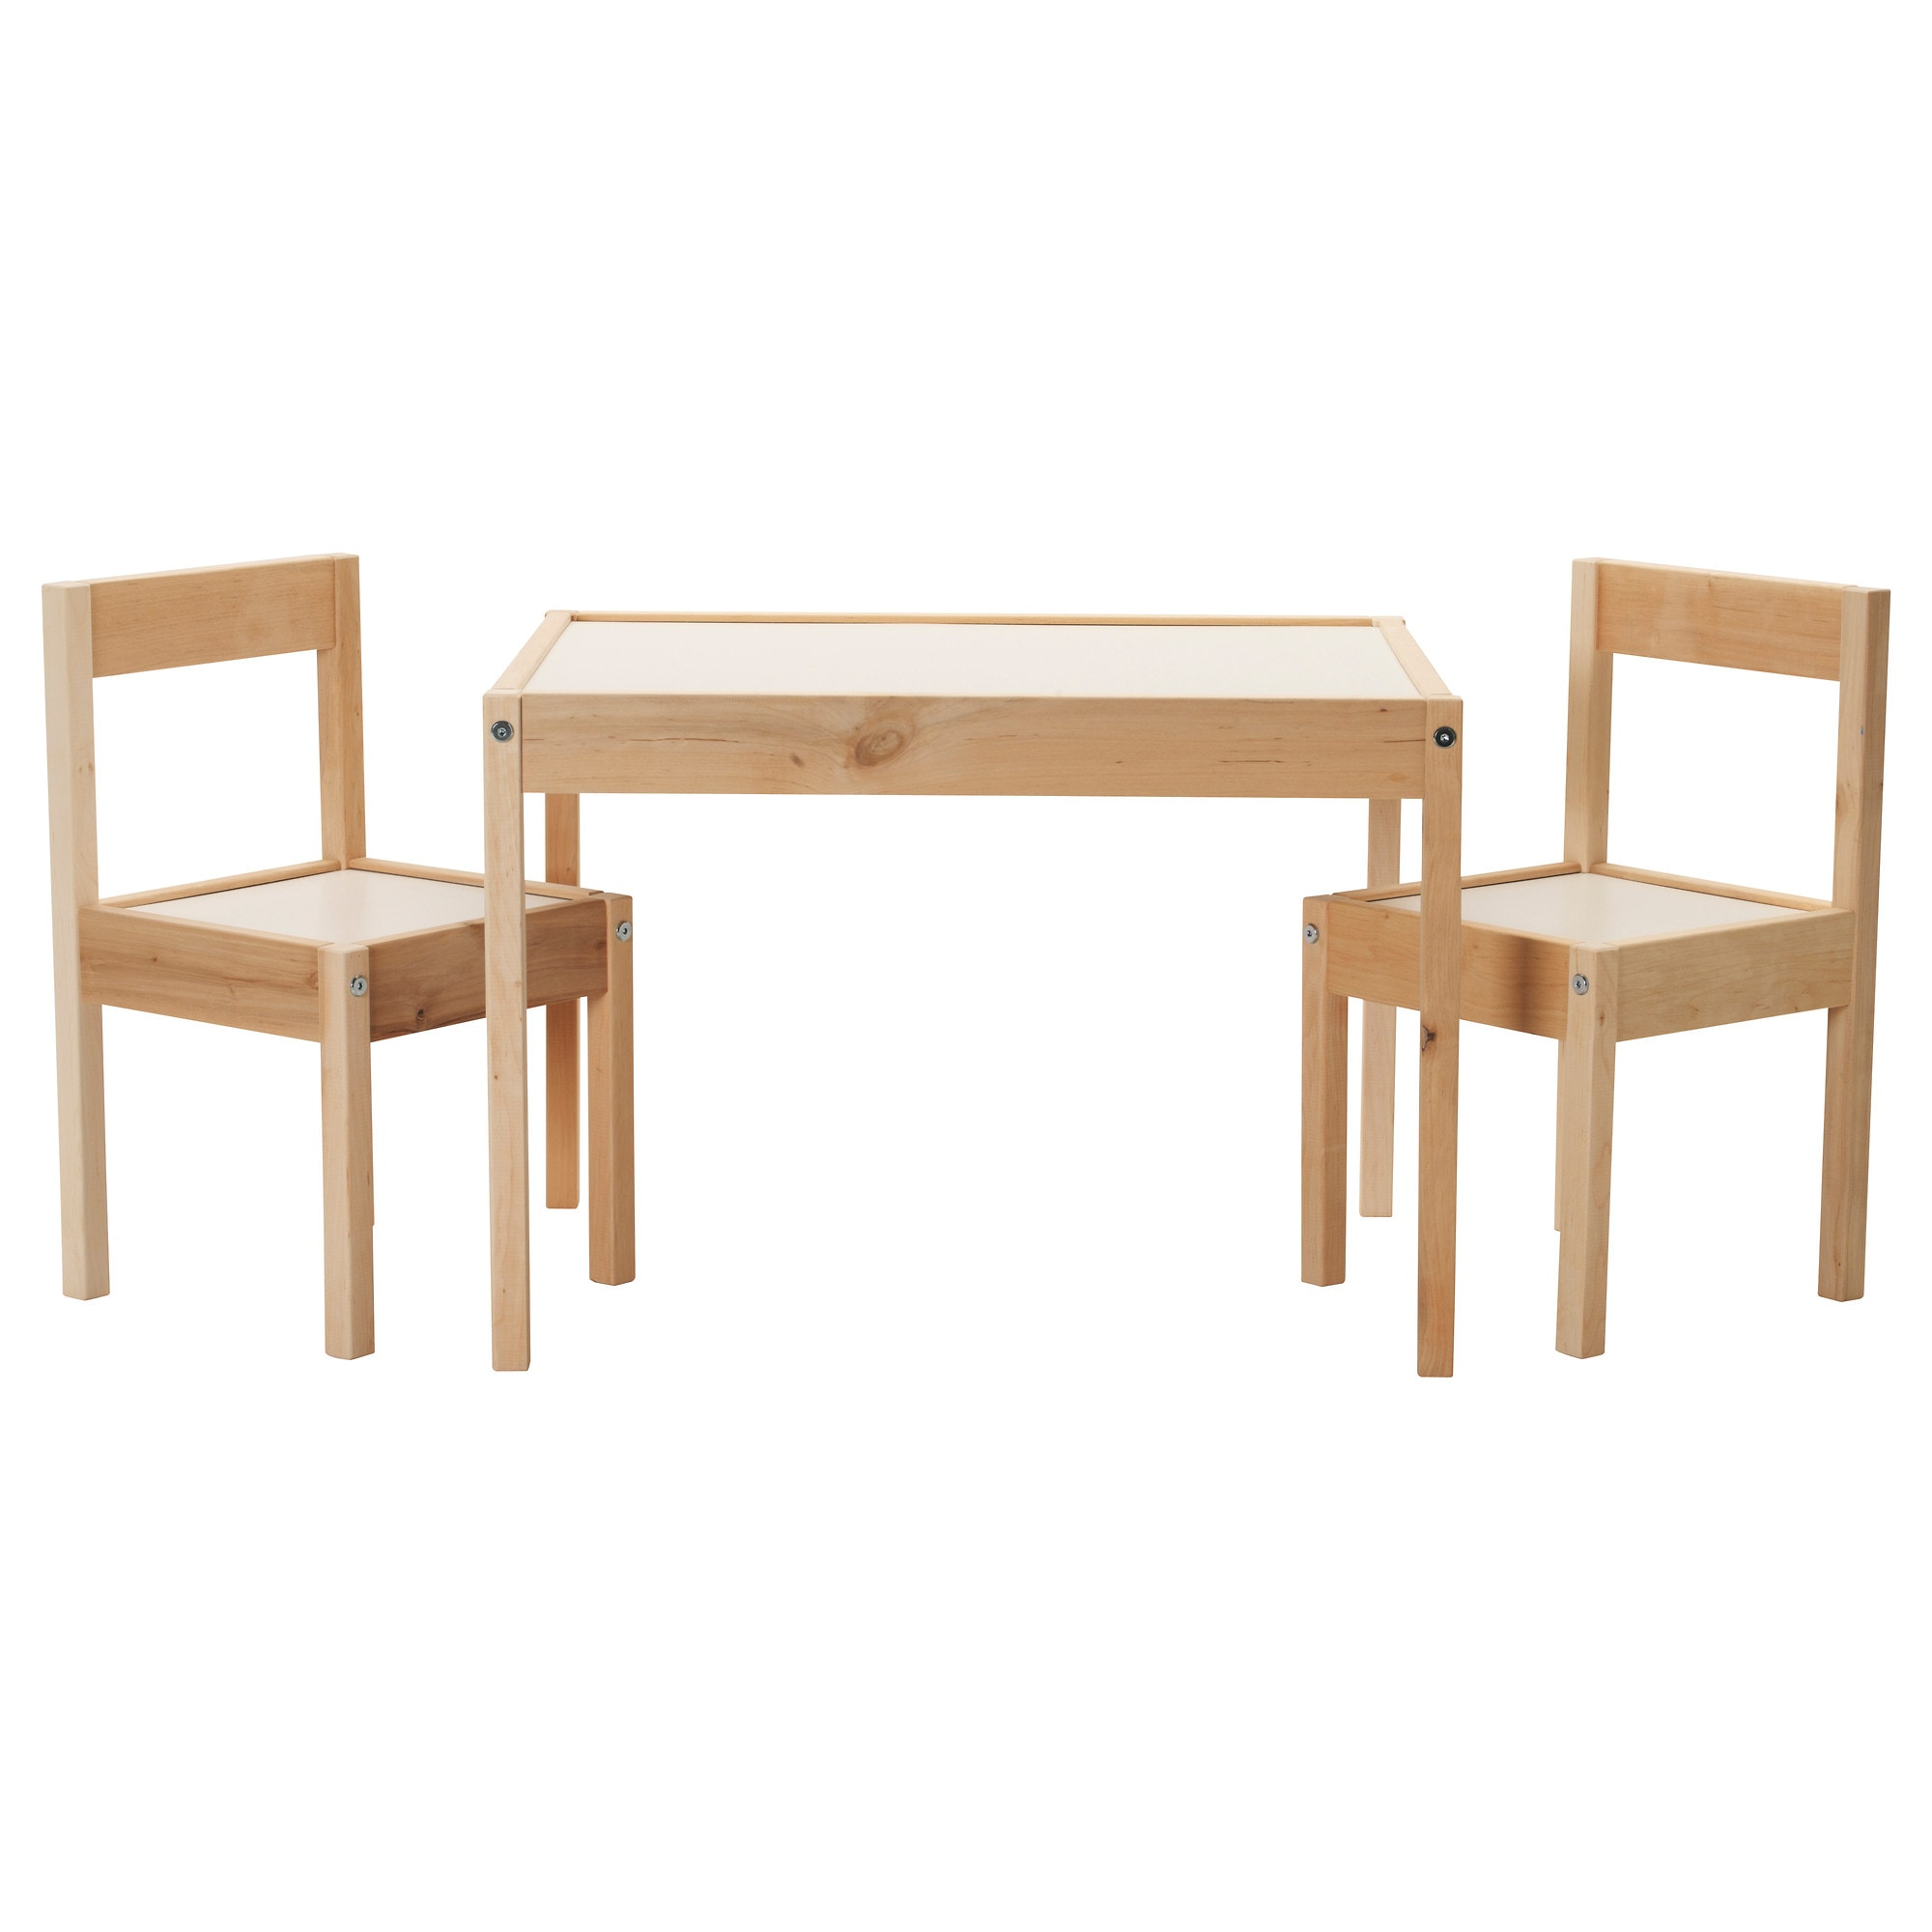 Toddler table and chair - Toddler Table And Chair